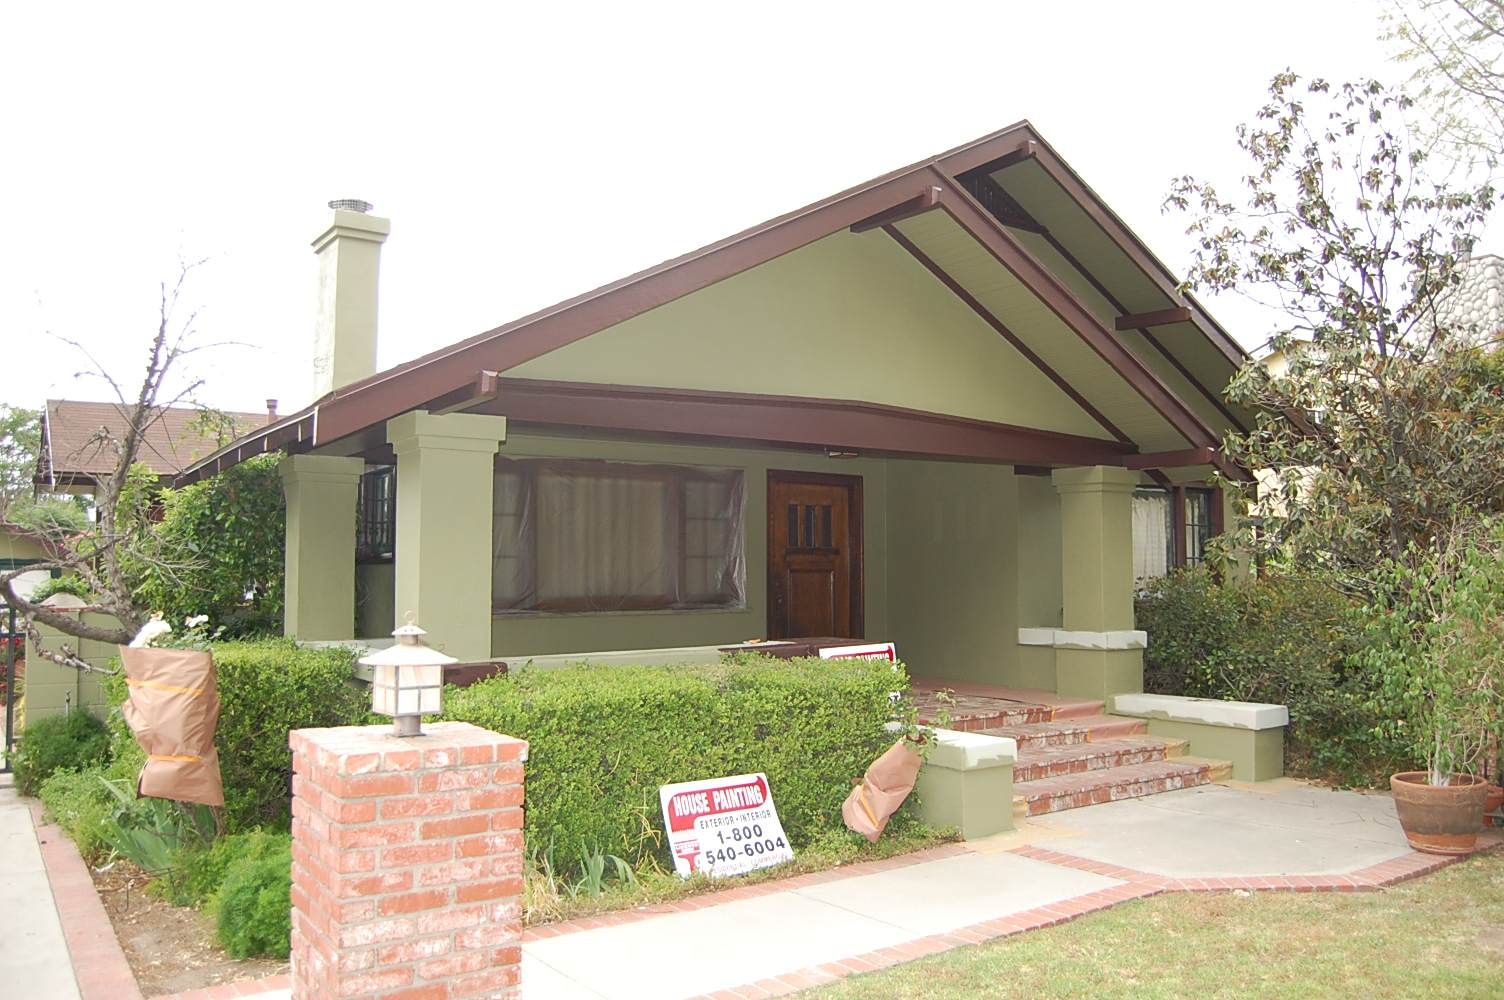 Painting Contractor North Hollywood Ca 91601 91602 91604 91605 91607 House Painting Company